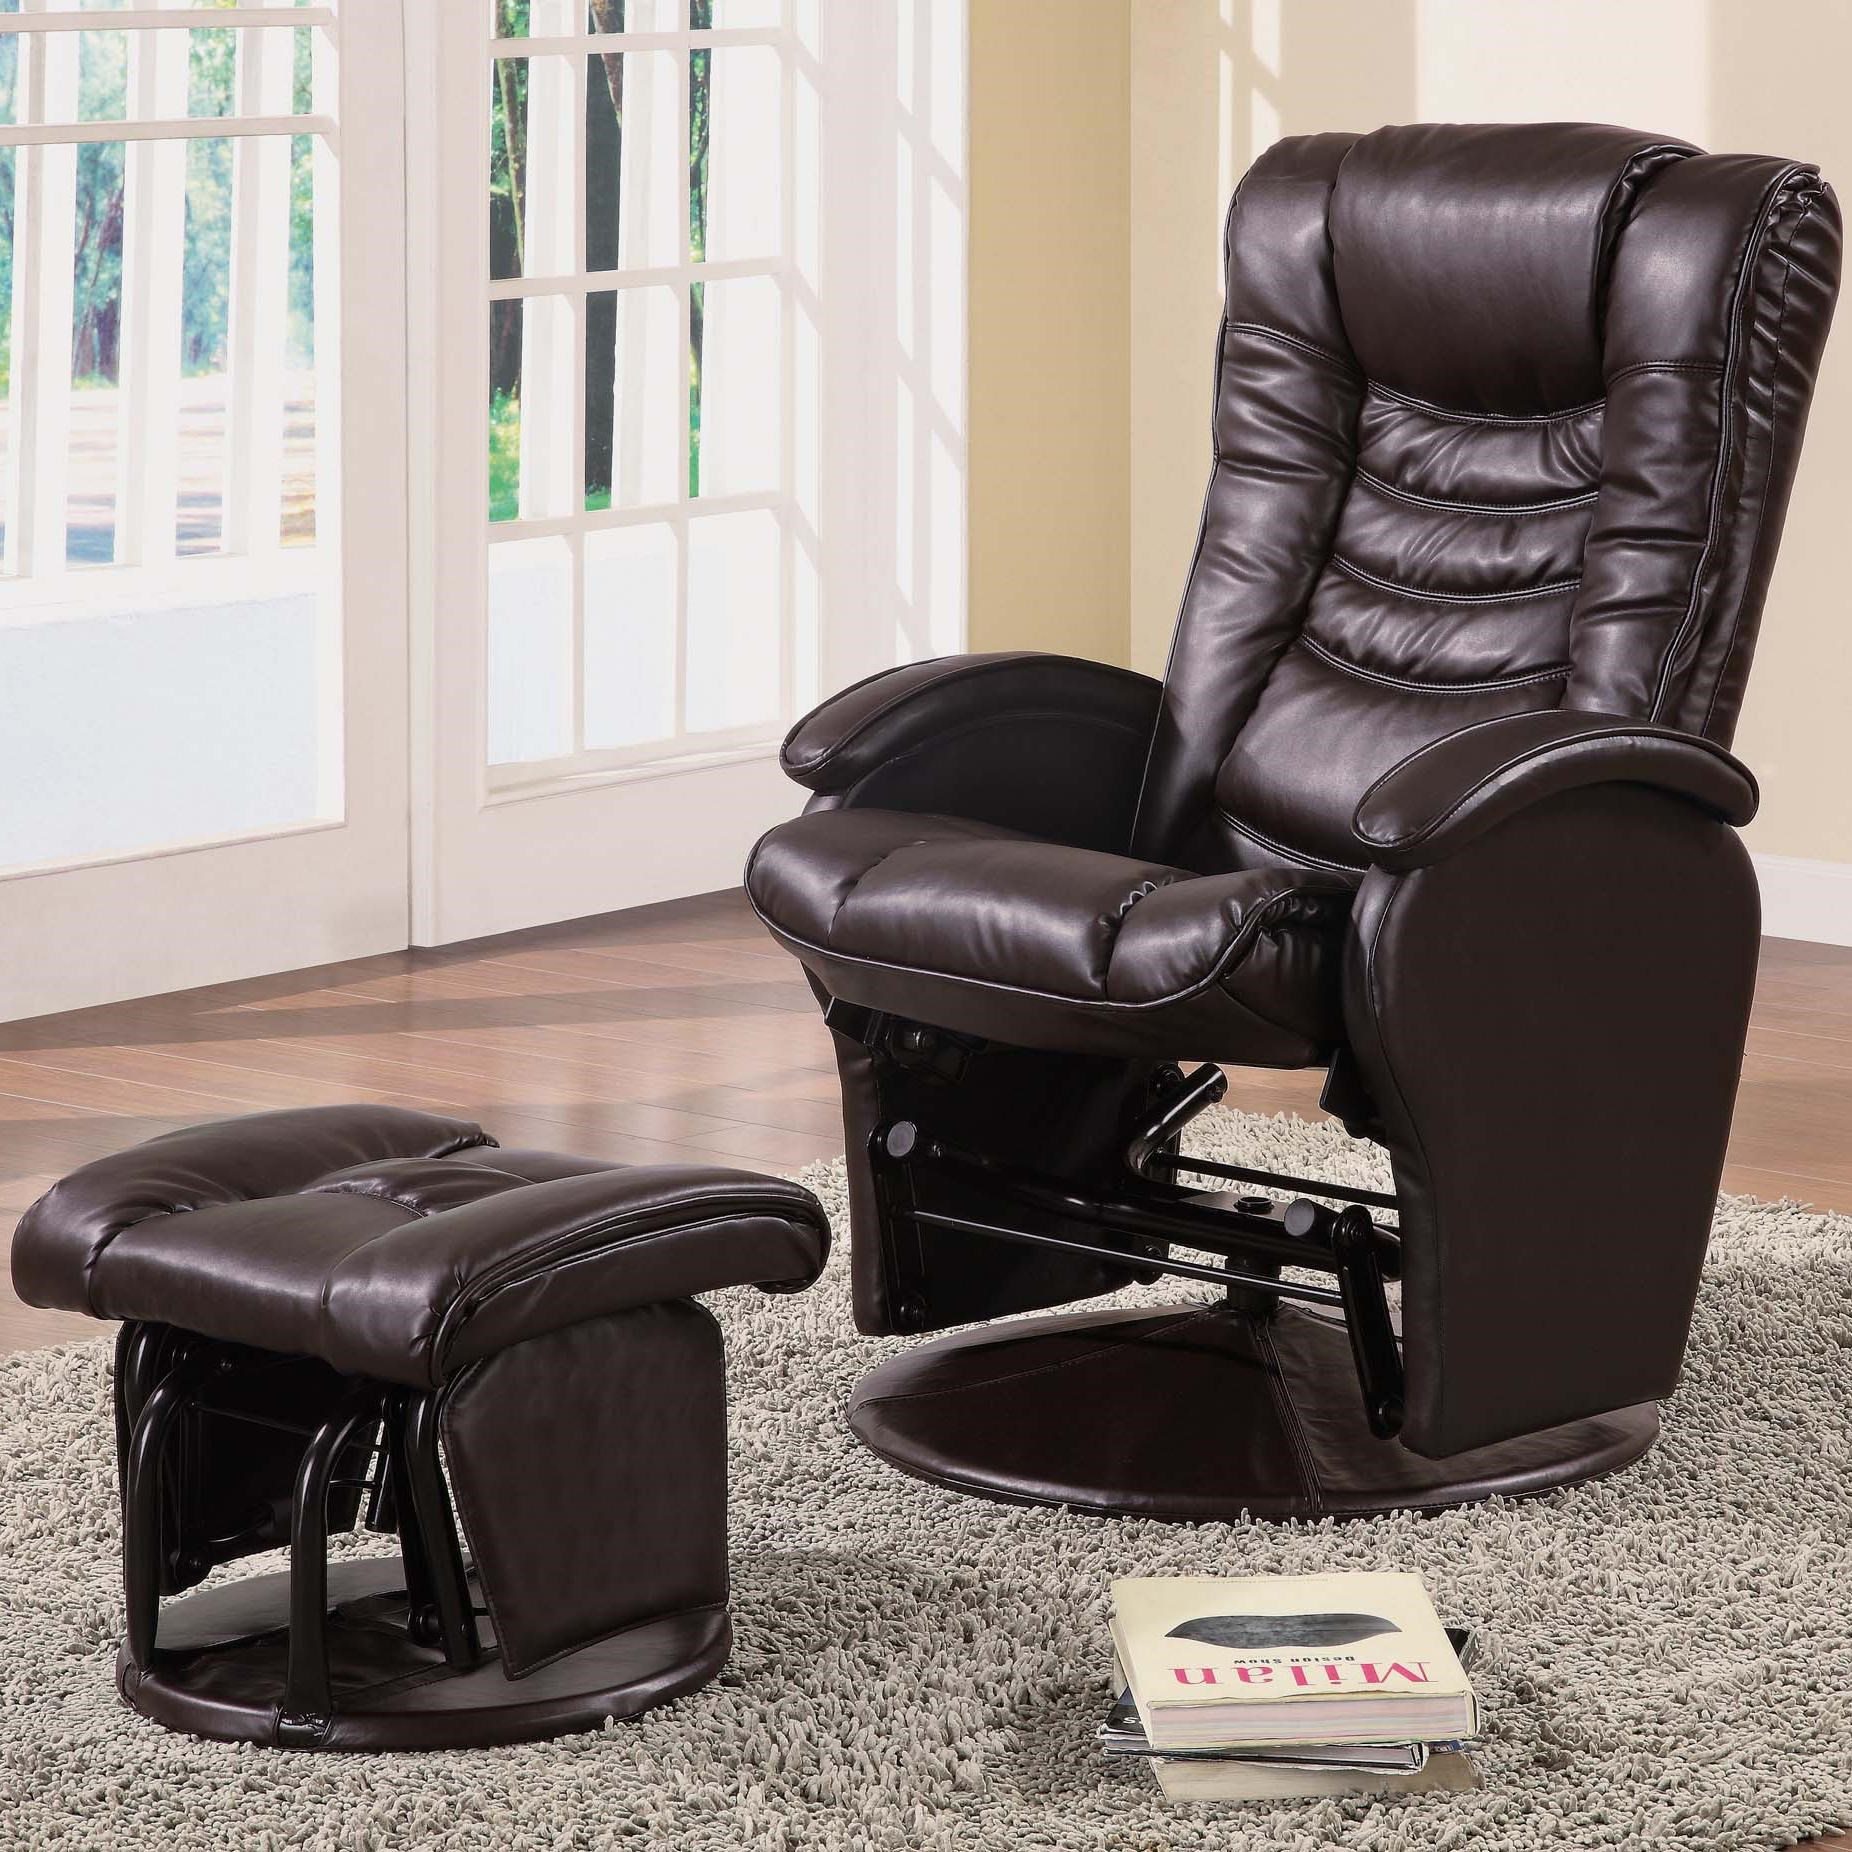 recliner vs chair with ottoman buy baby high coaster recliners ottomans casual glider matching